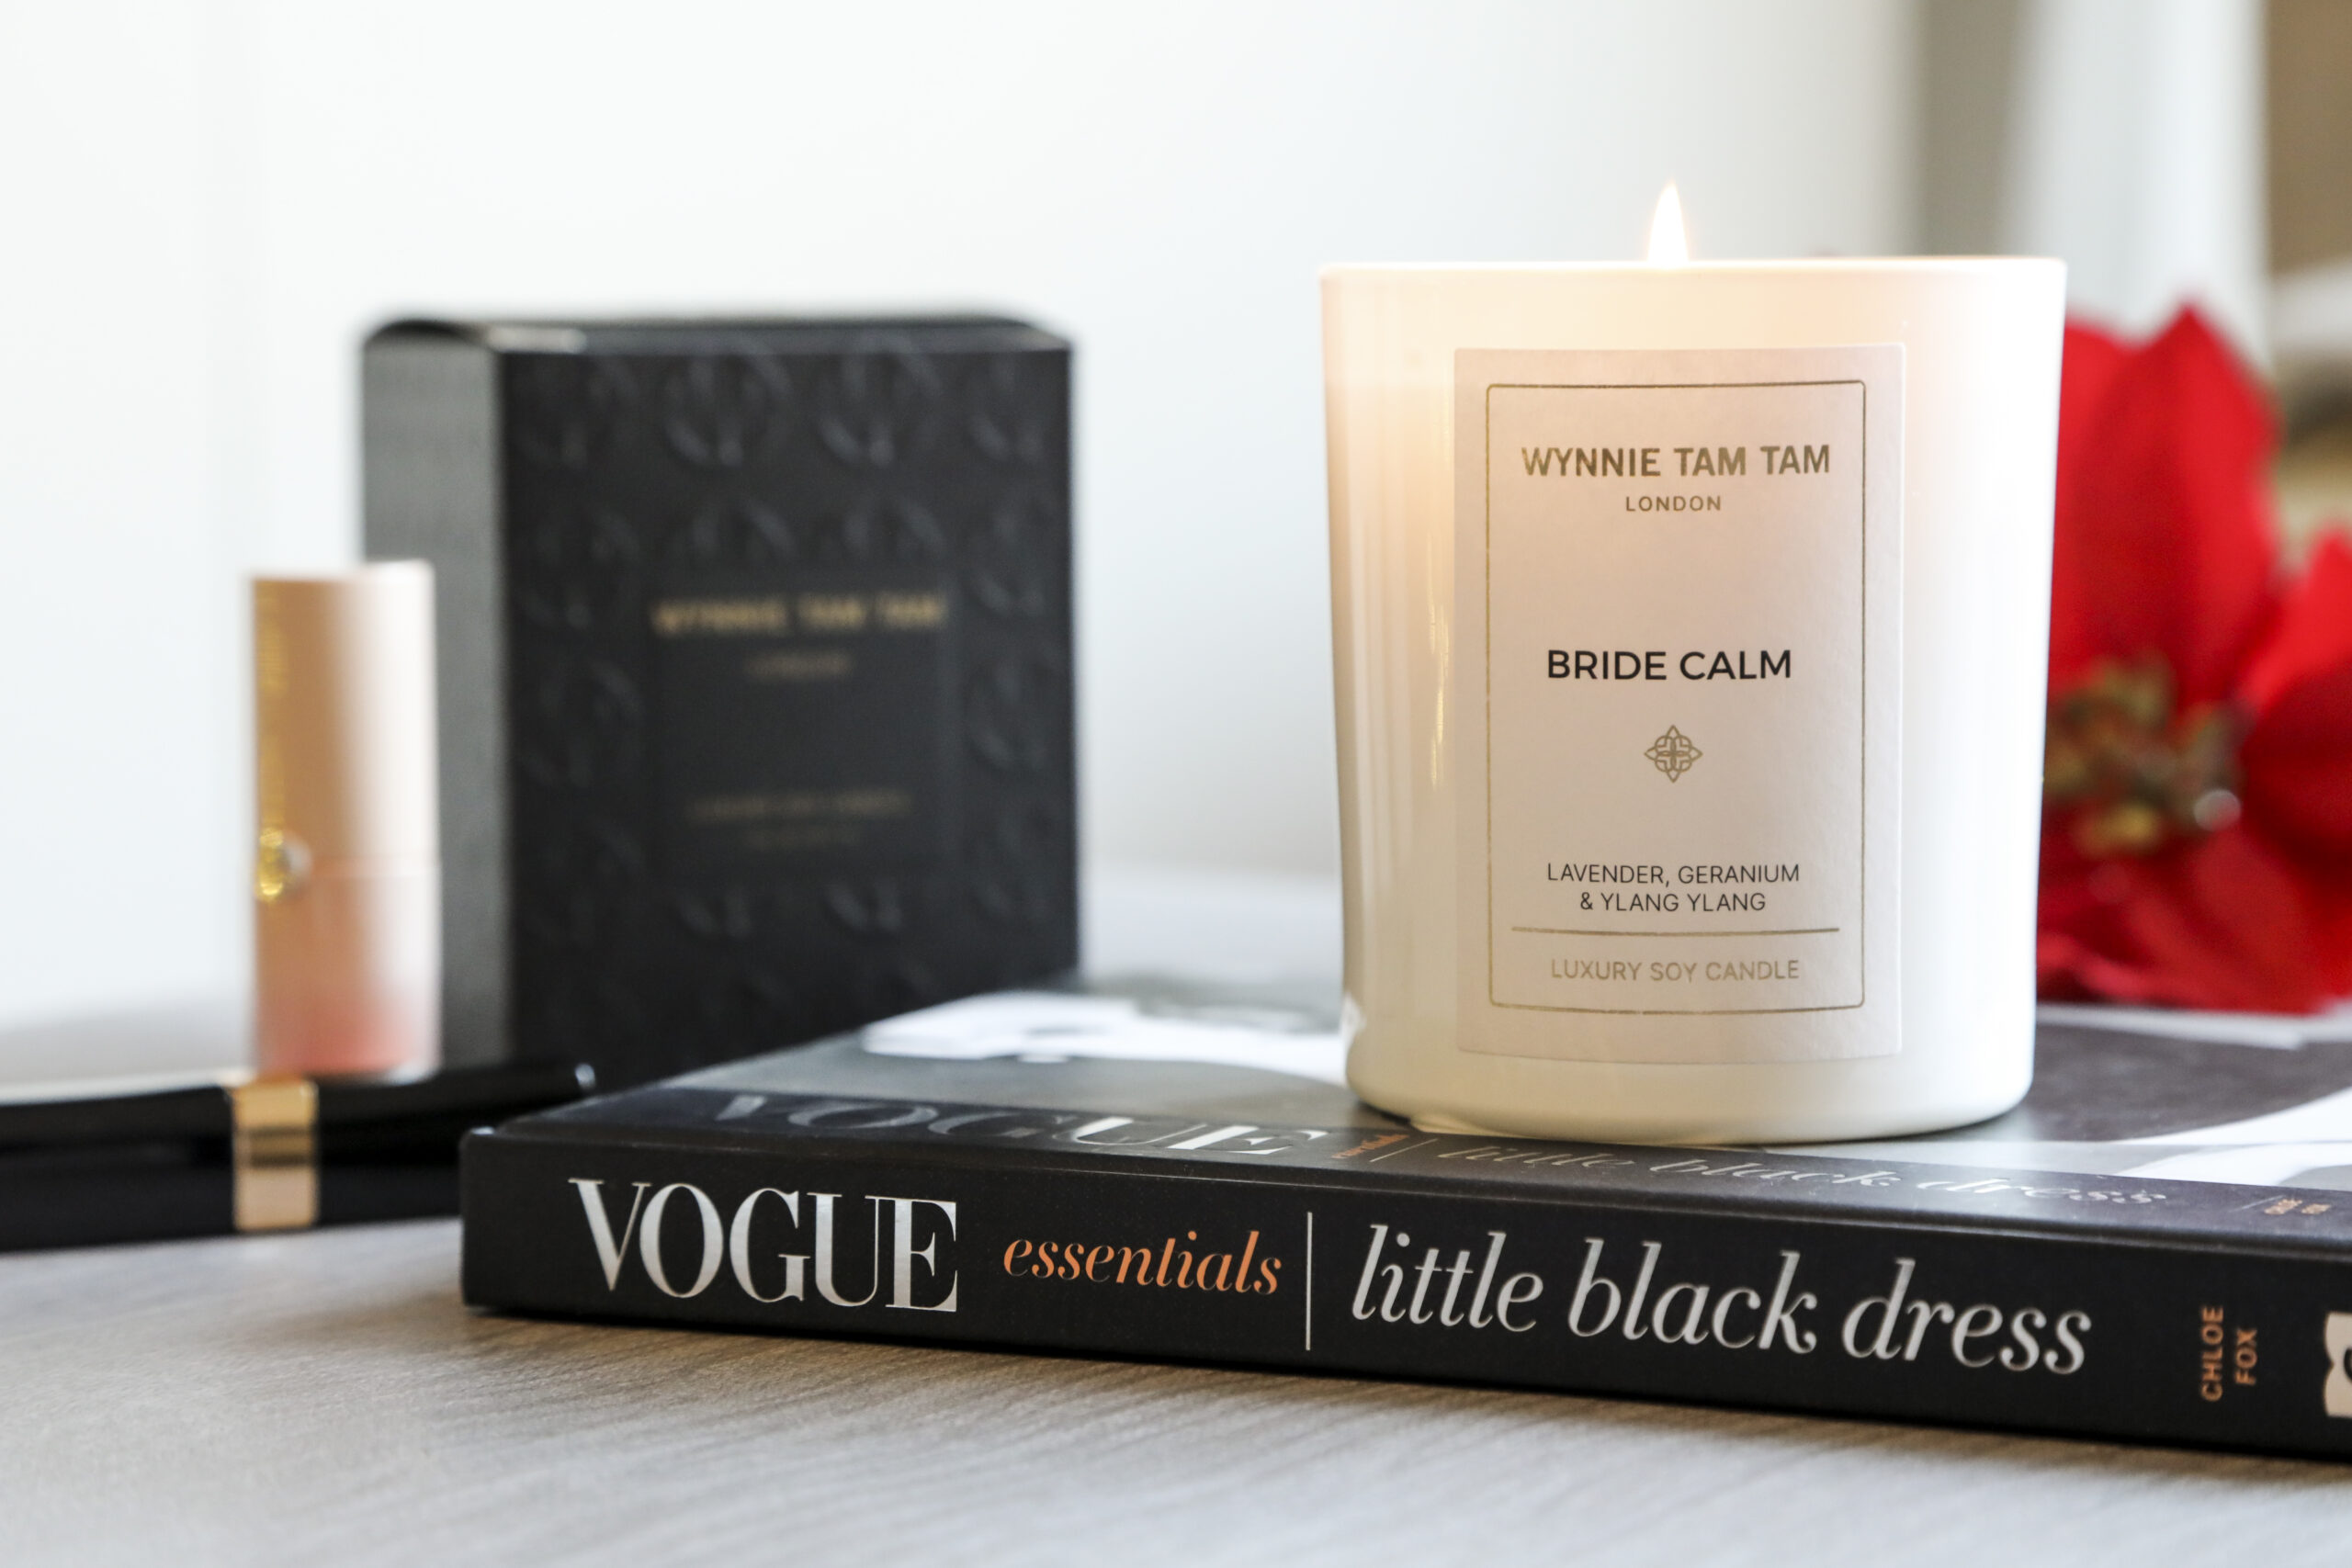 A calming candle for brides to relax